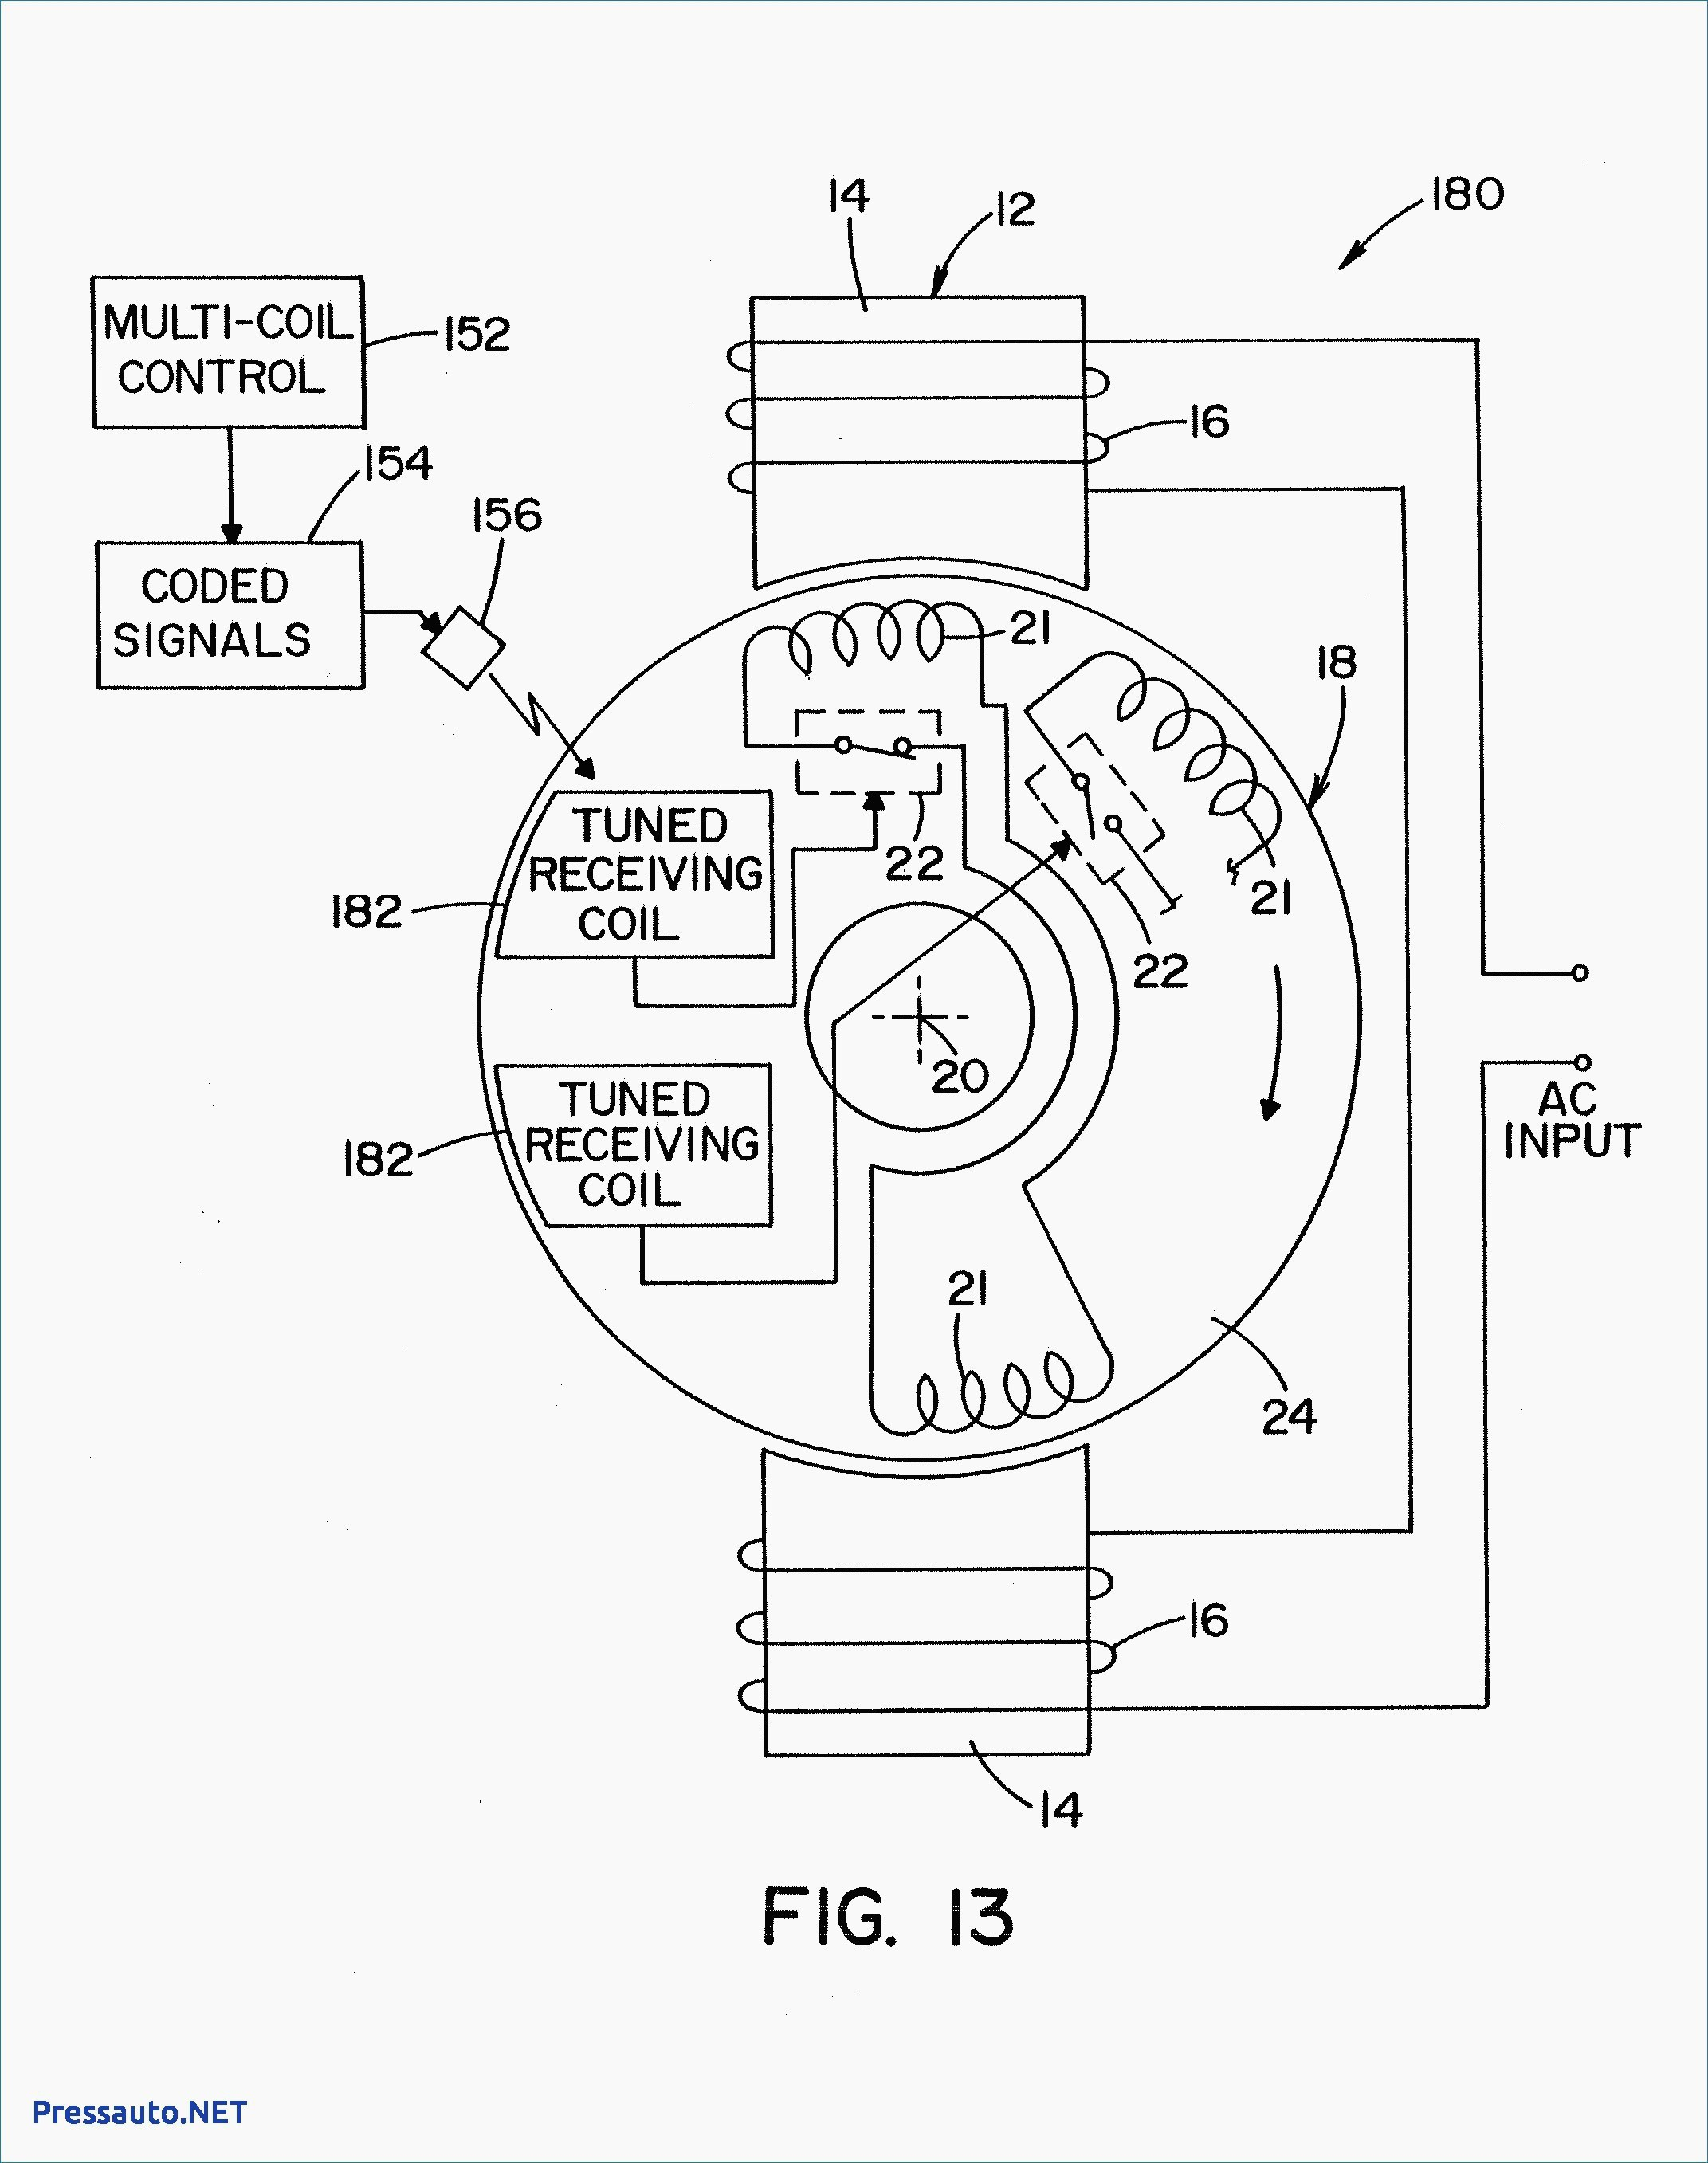 Condenser Fan Wiring Diagram | Wiring Diagram - Ac Fan Motor Wiring Diagram